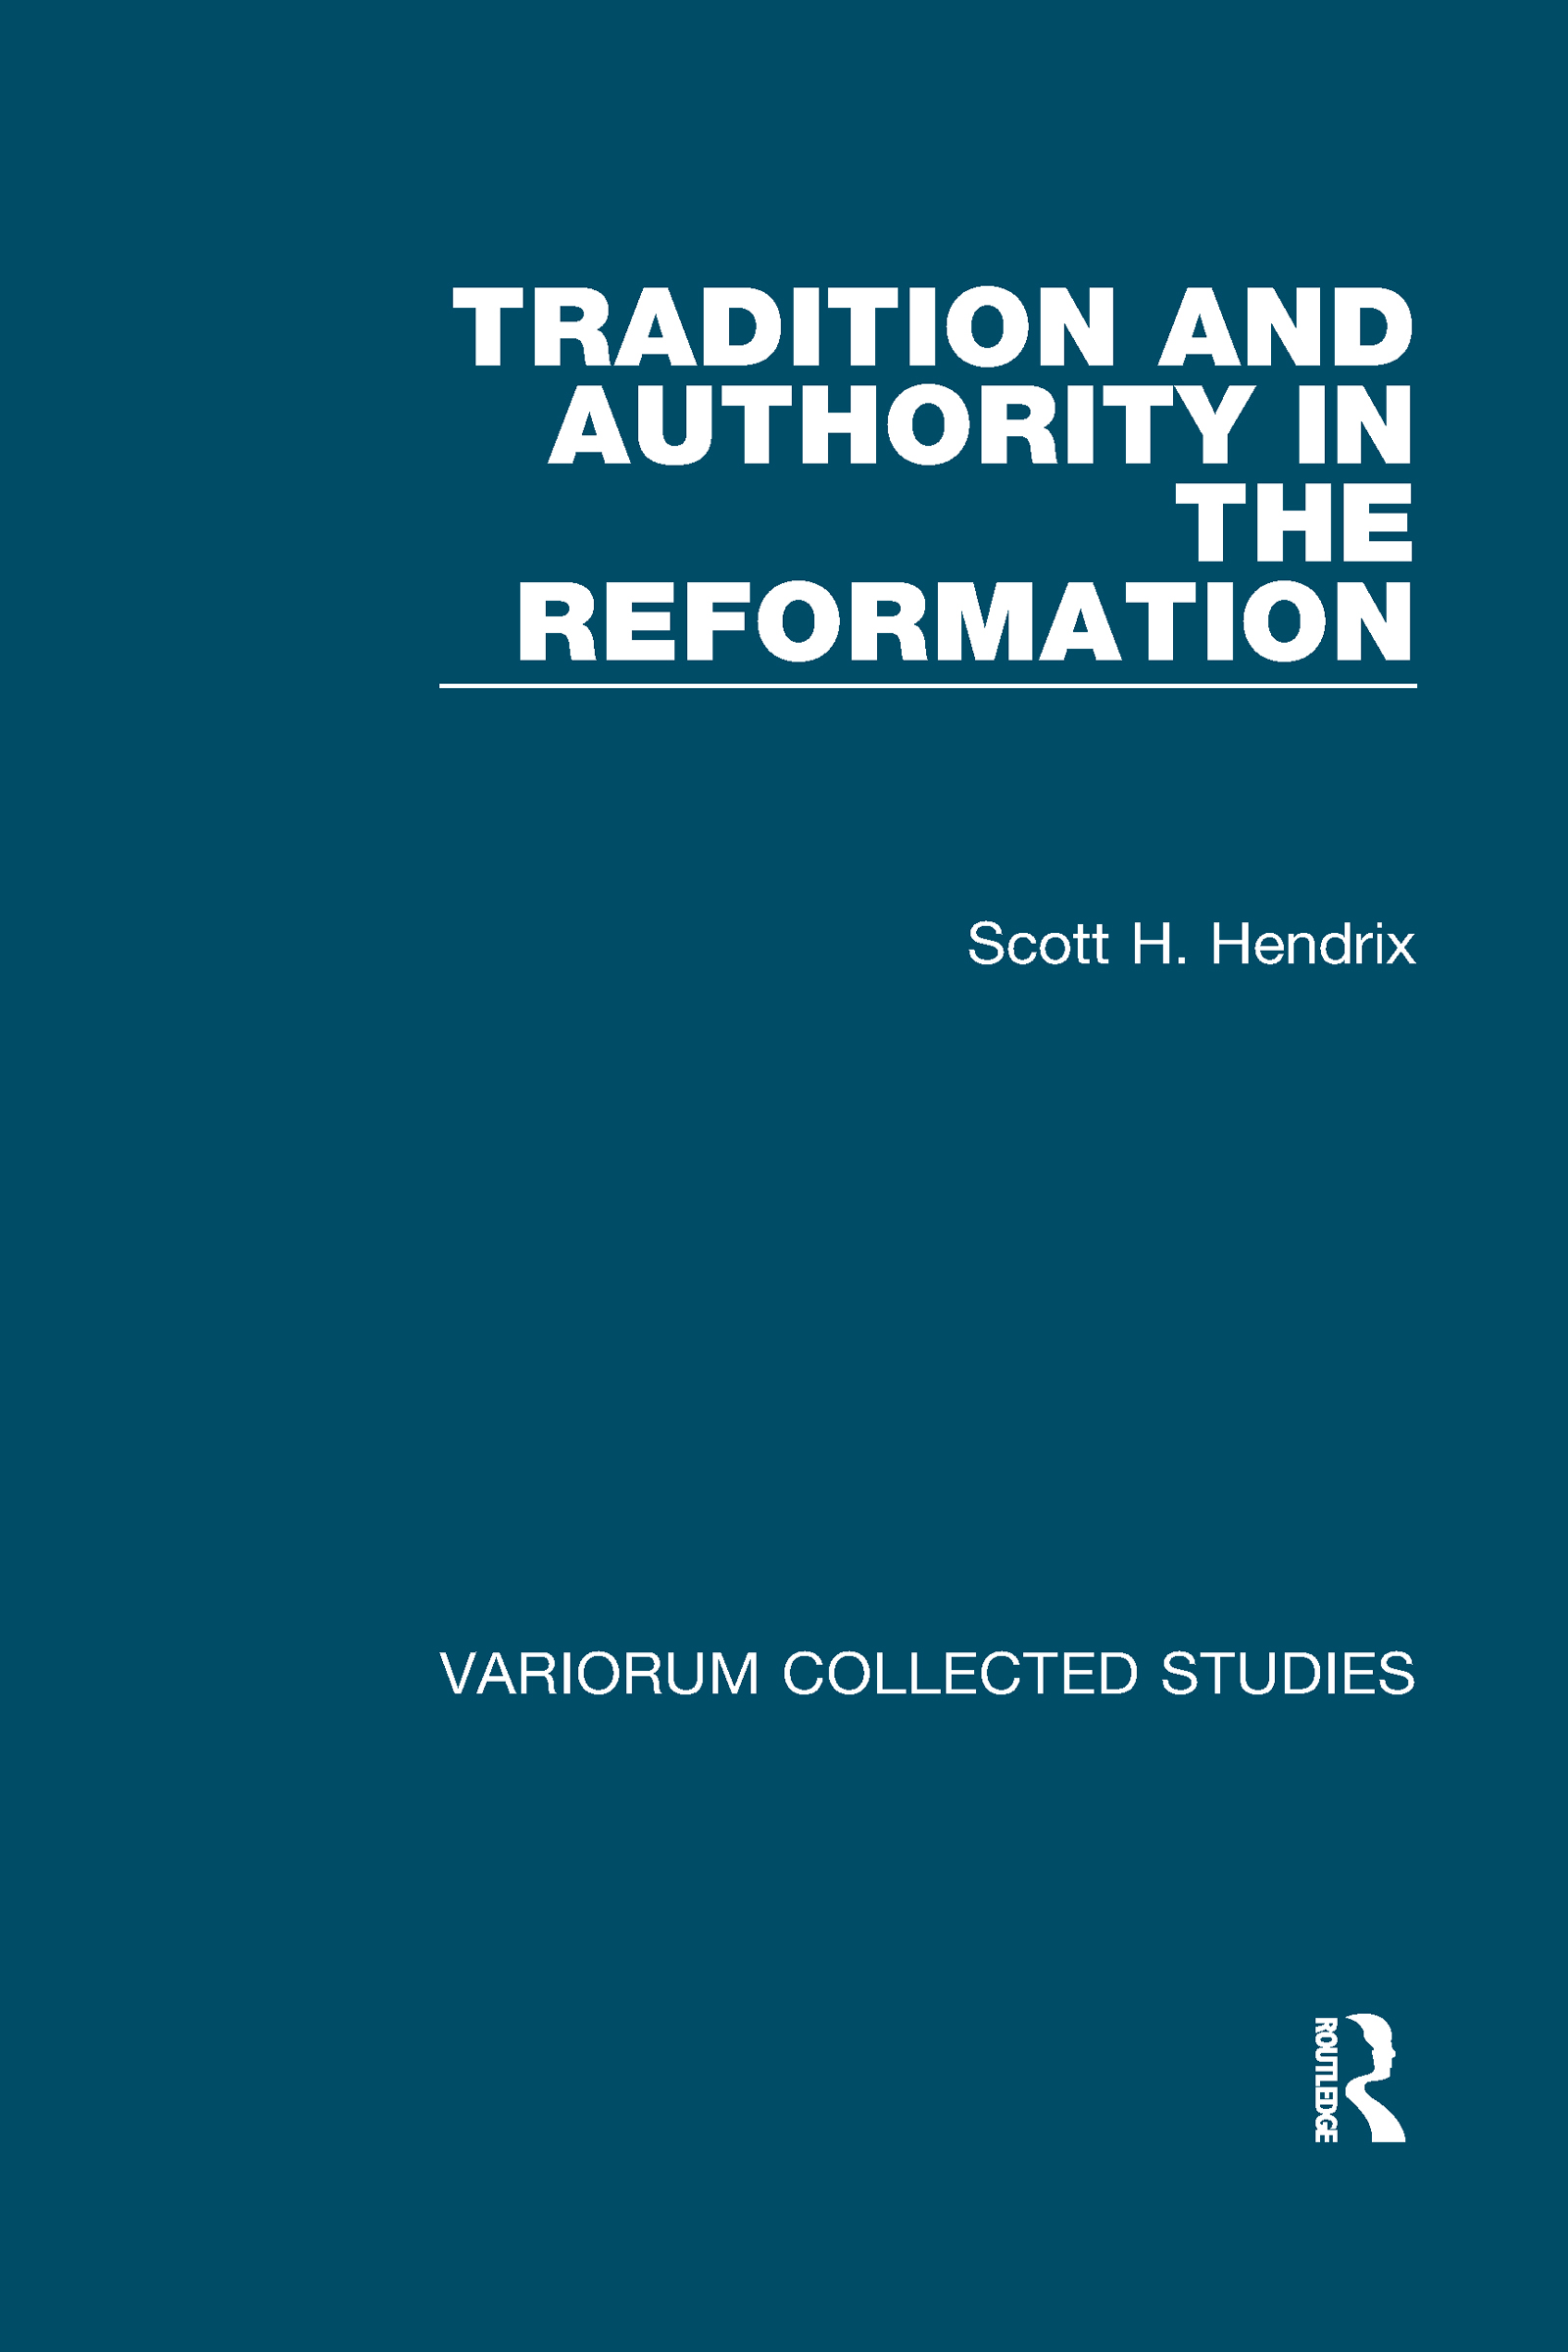 Tradition and Authority in the Reformation book cover